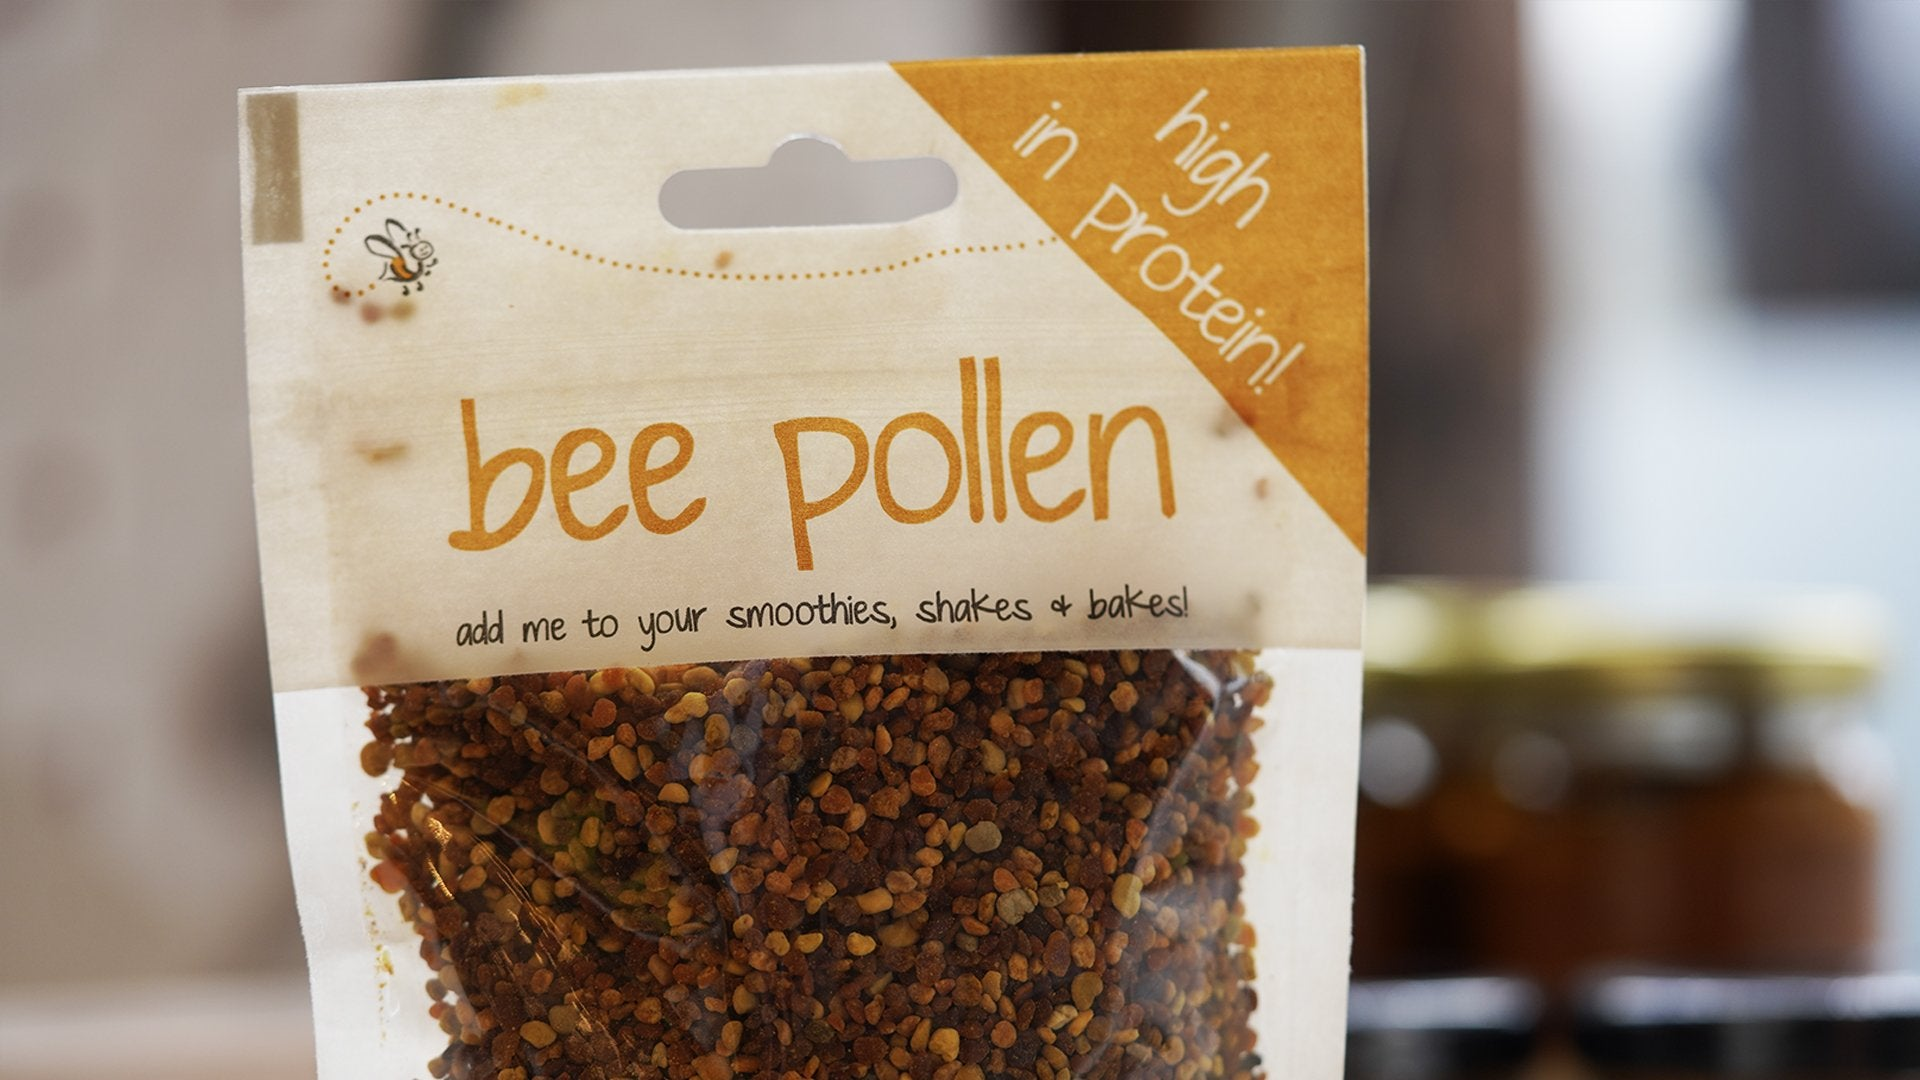 Hilltop Bee Pollen for sale - Parsons Nose